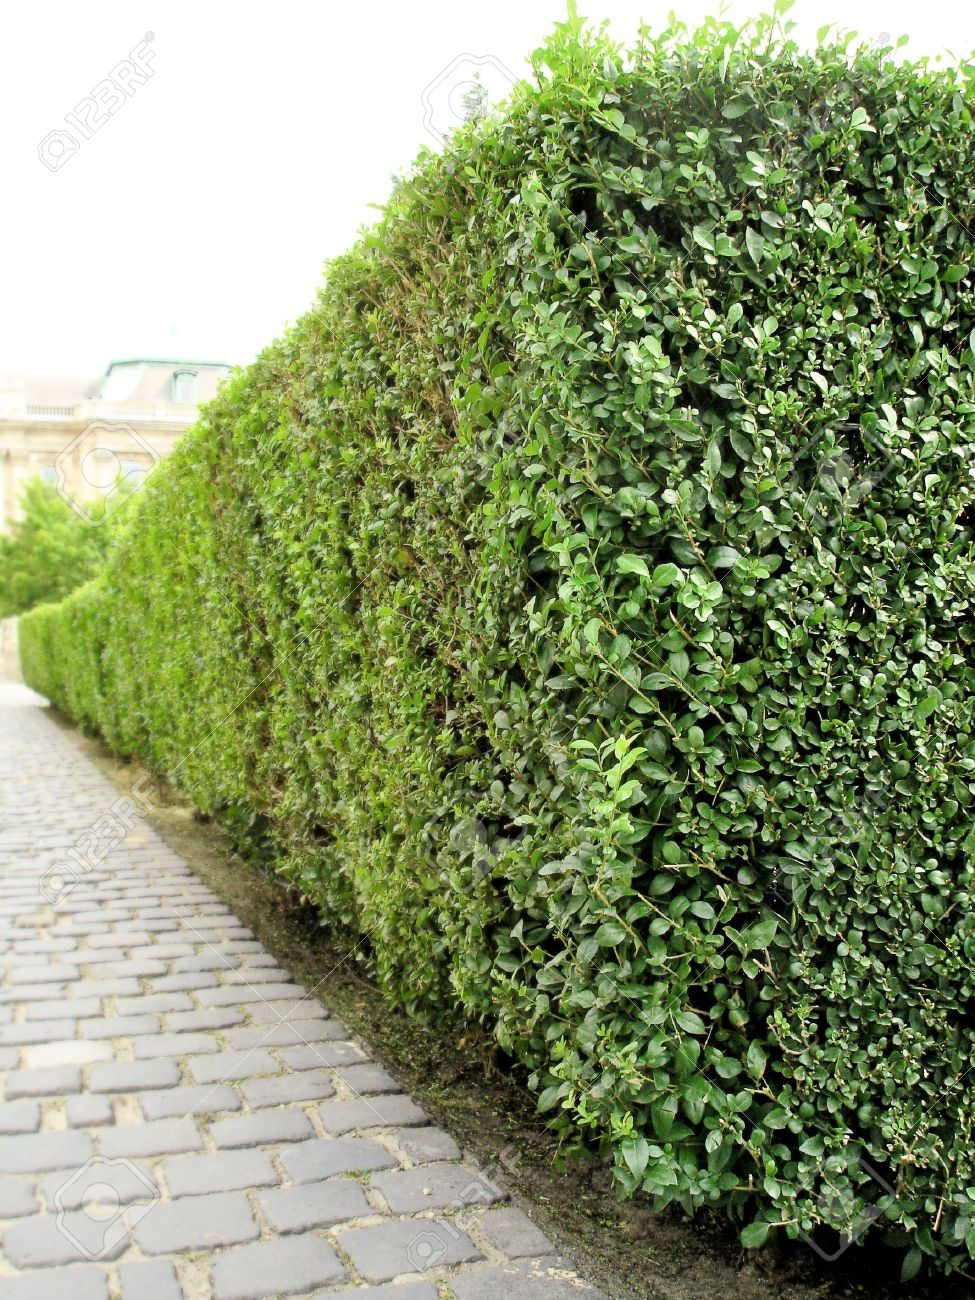 Marvelous Green Bush Garden Perspective Stock Photo   21608813